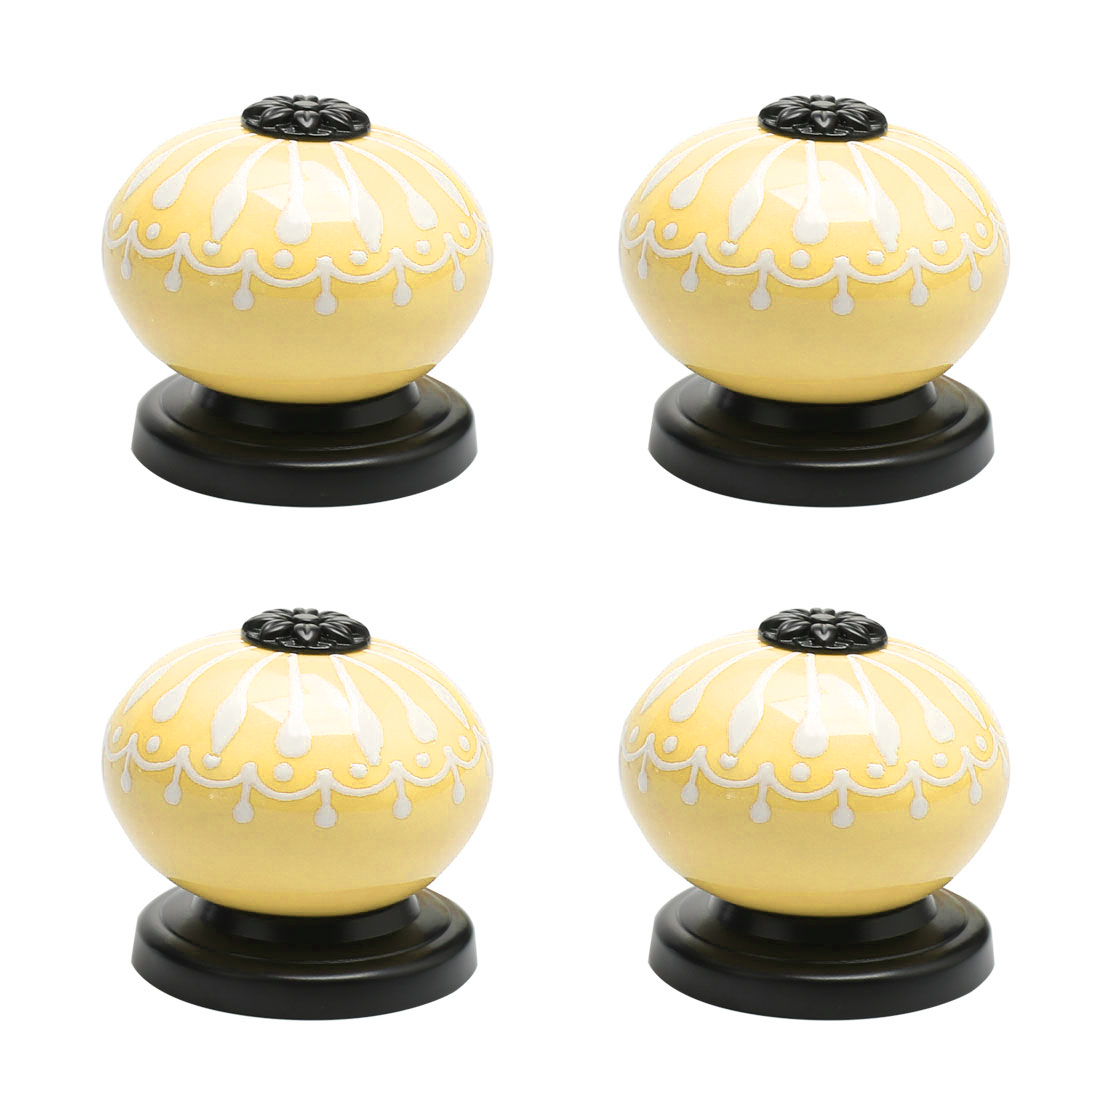 Ceramic Knob Pull Handle Dresser Cupboard Wardrobe Door Accessories 4pcs Yellow